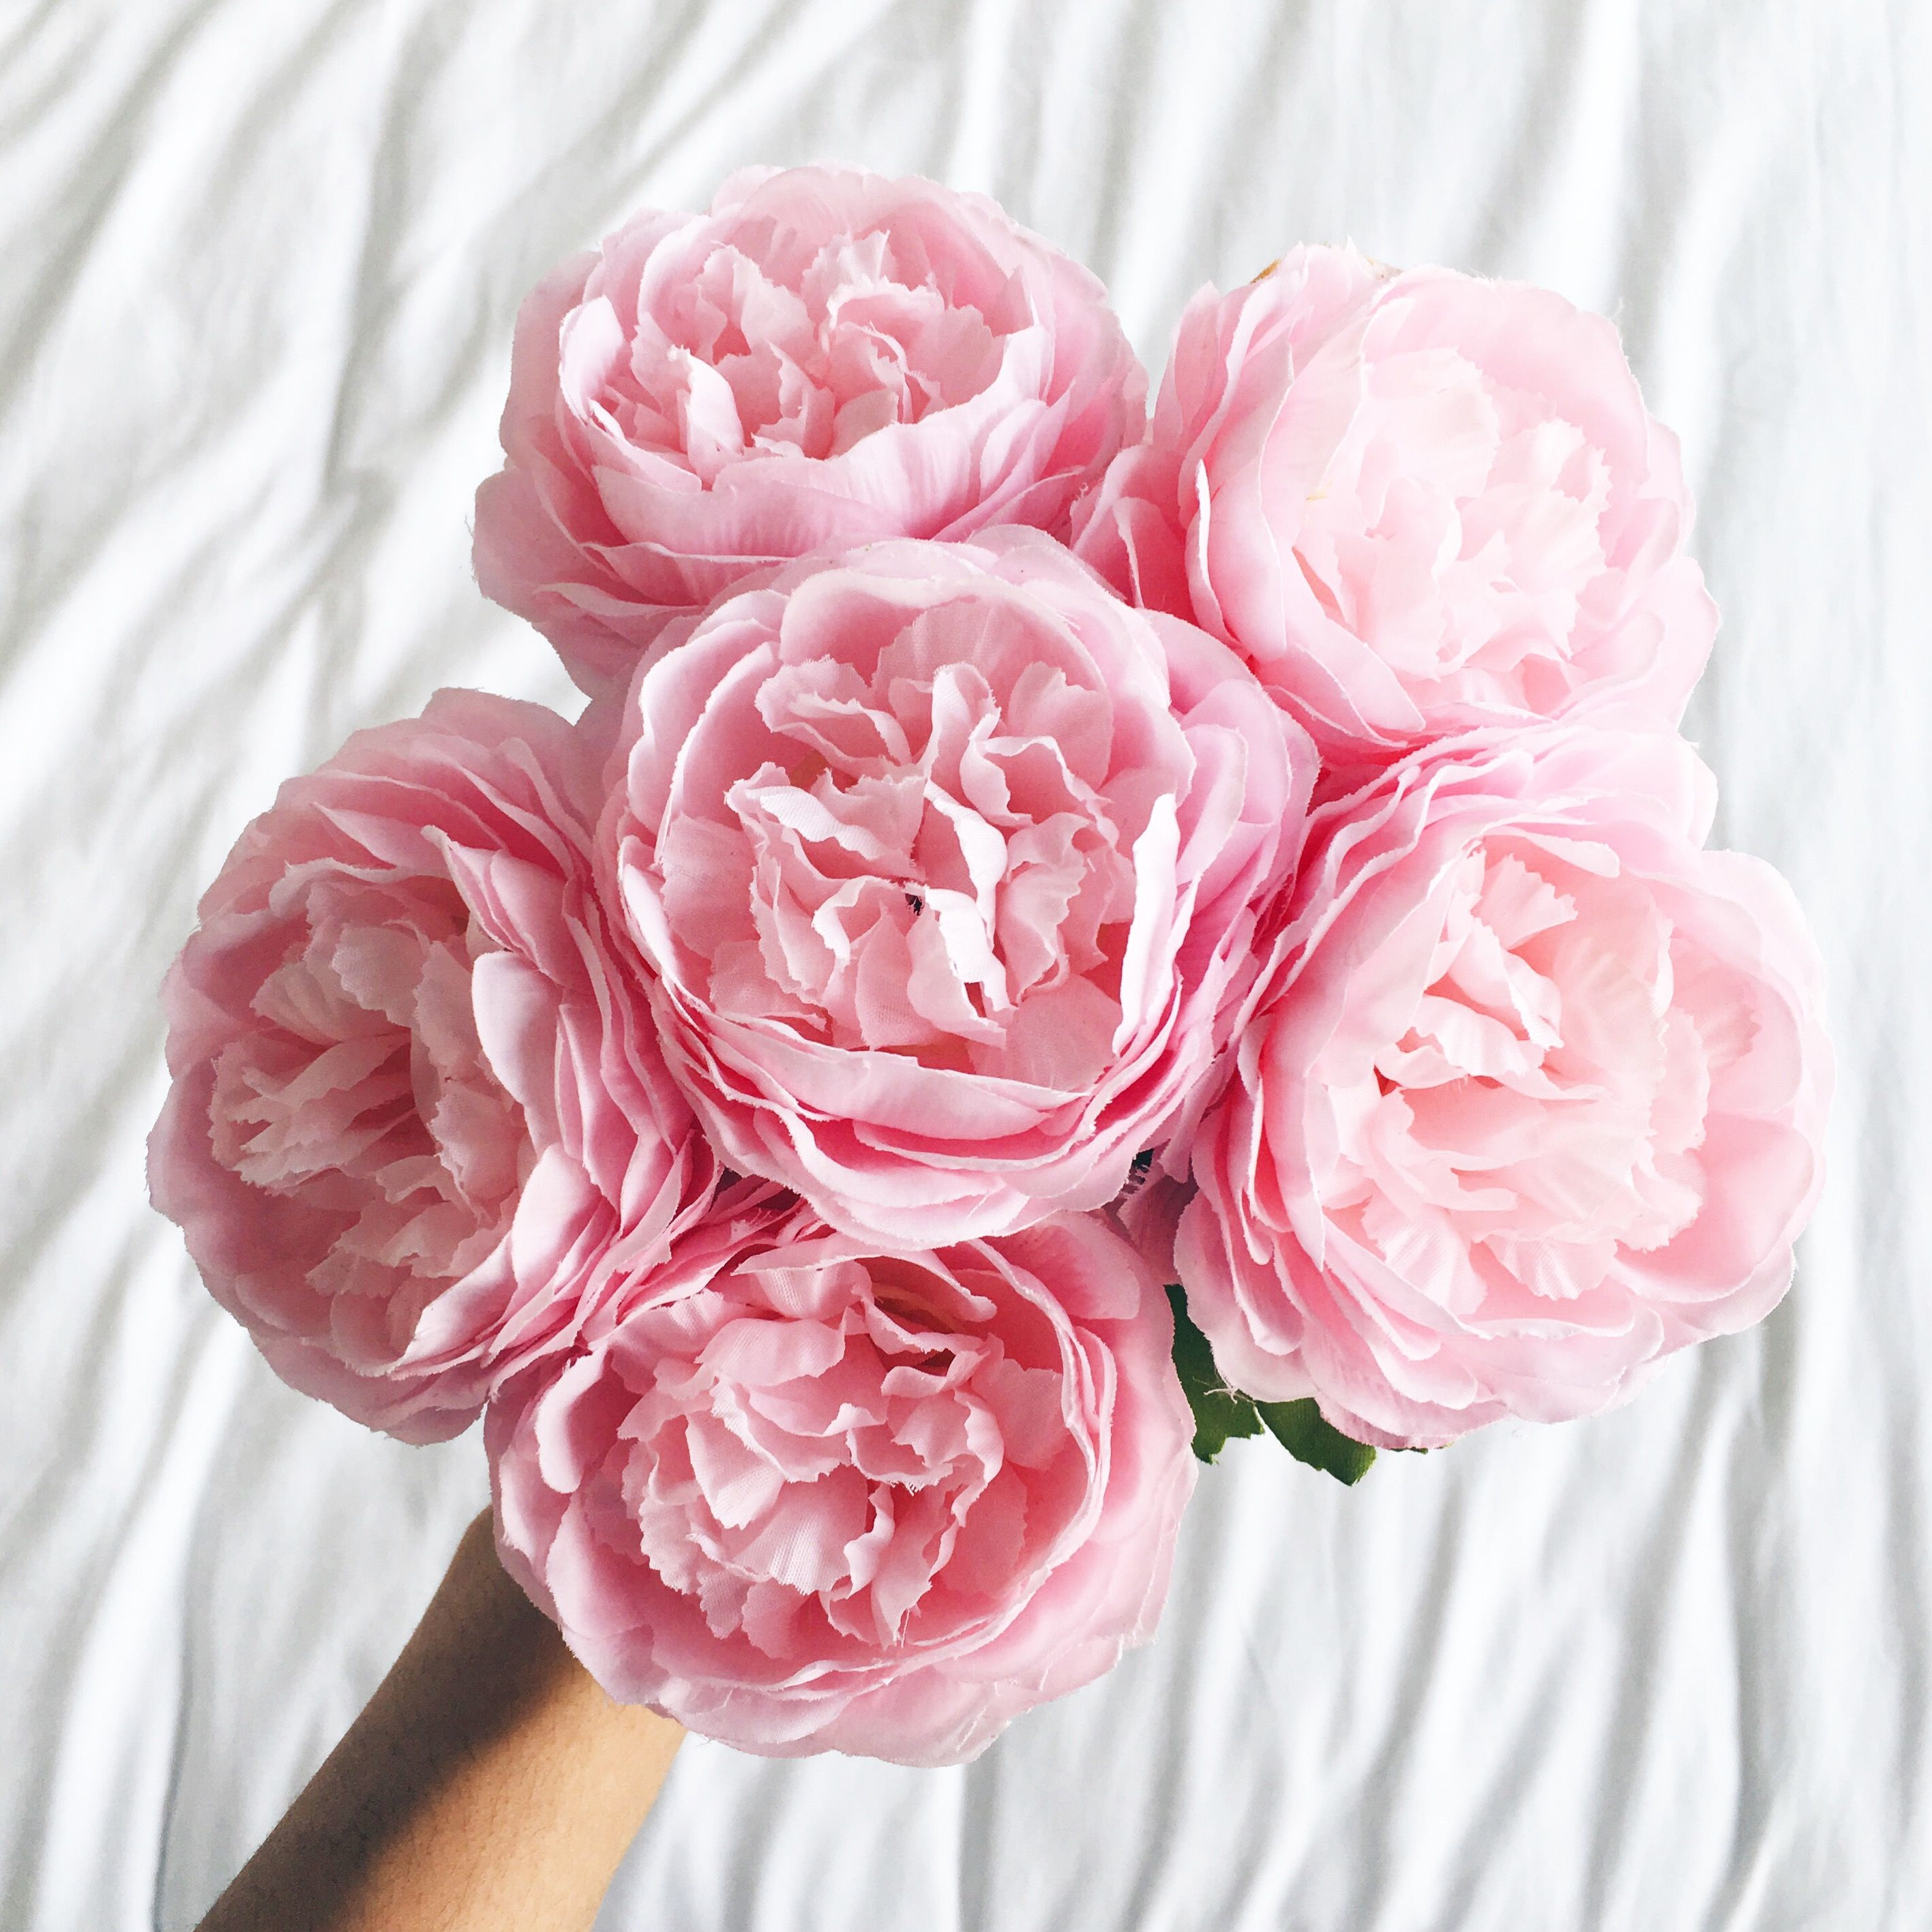 A pretty punch of pink peony flowers luxury faux flowers from a pretty punch of pink peony flowers luxury faux flowers from gypsypetal dhlflorist Images